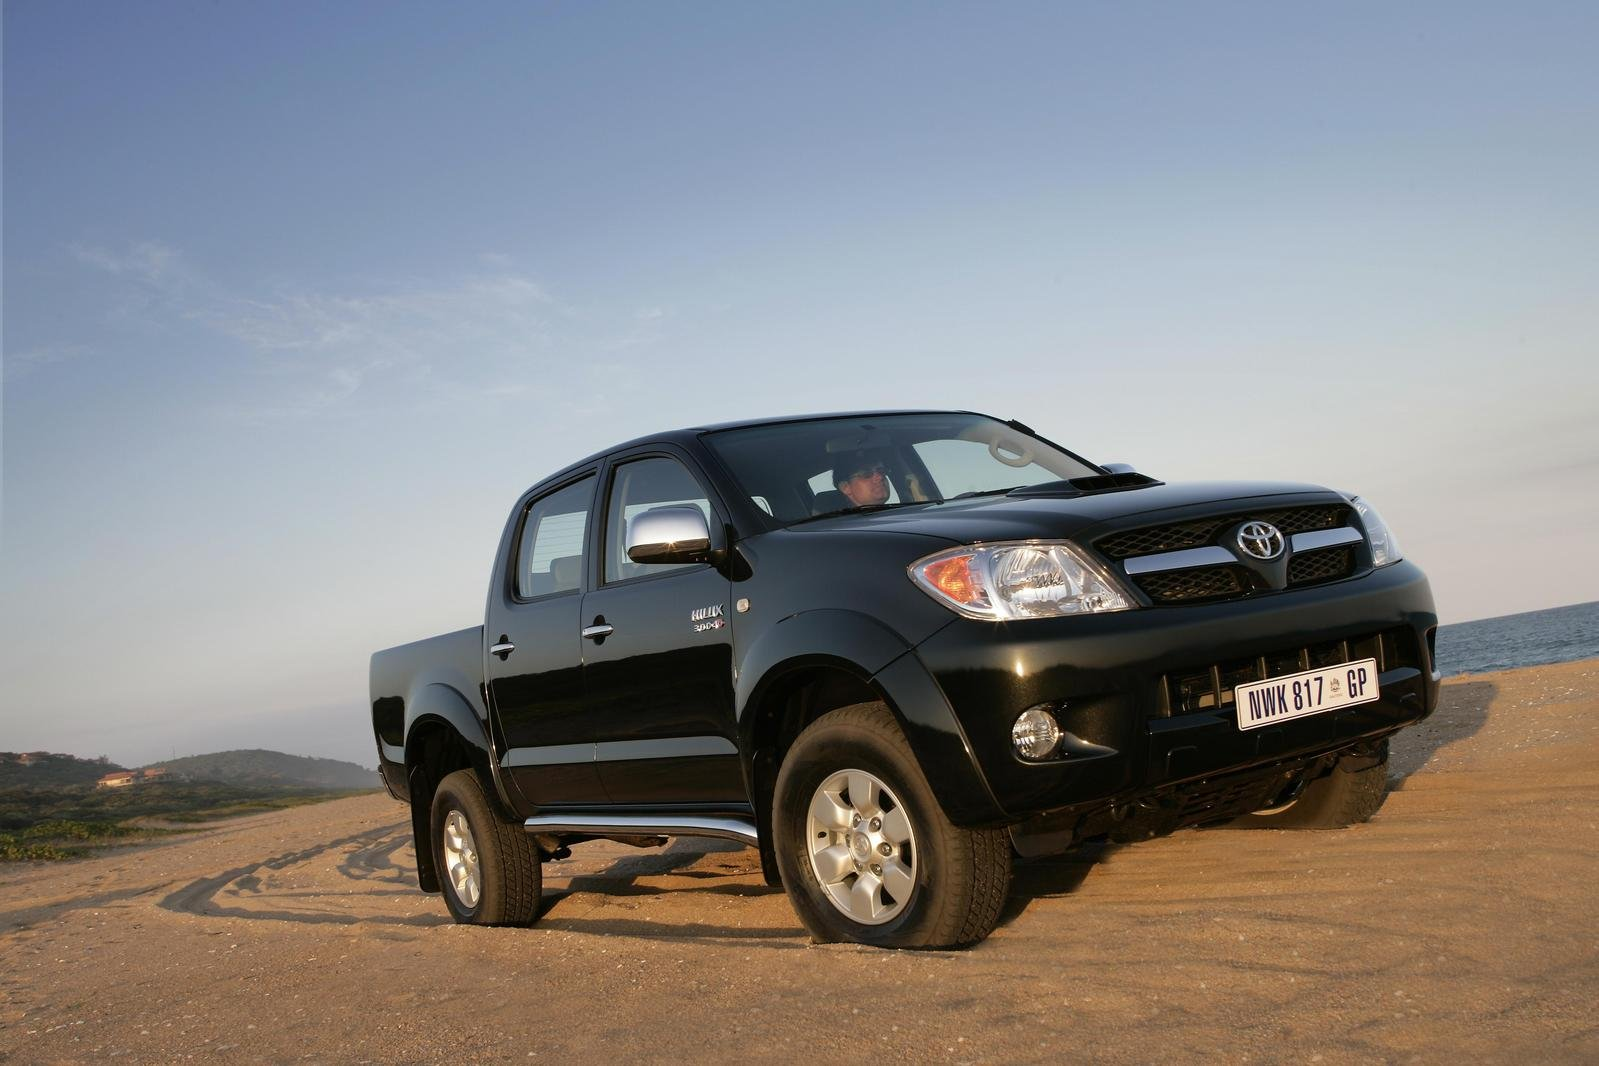 2007 toyota hilux picture 157977 car review top speed. Black Bedroom Furniture Sets. Home Design Ideas